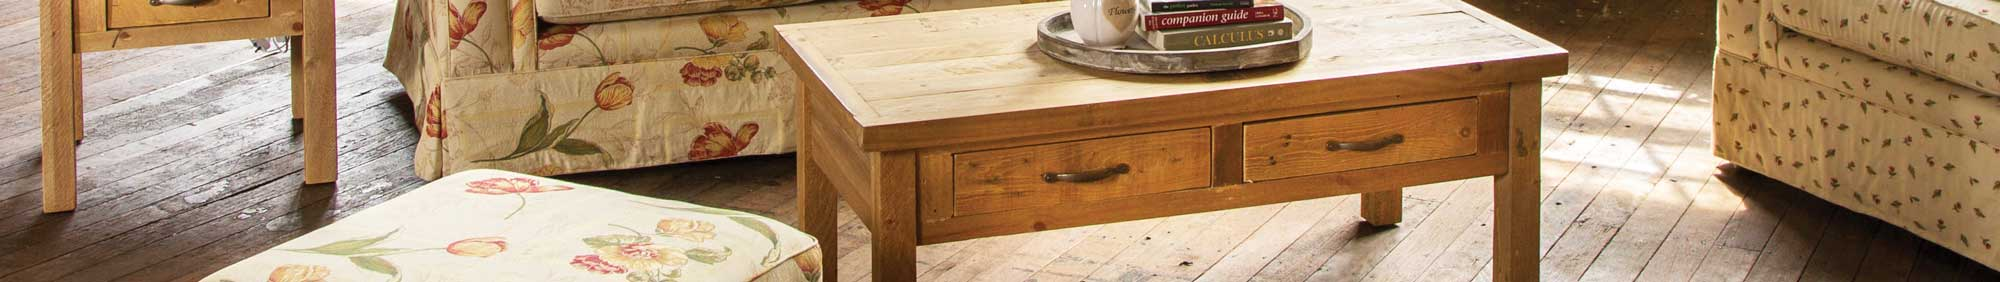 storage bench country style benches accent open furniture photos top design bed bedroom cupboard ideas